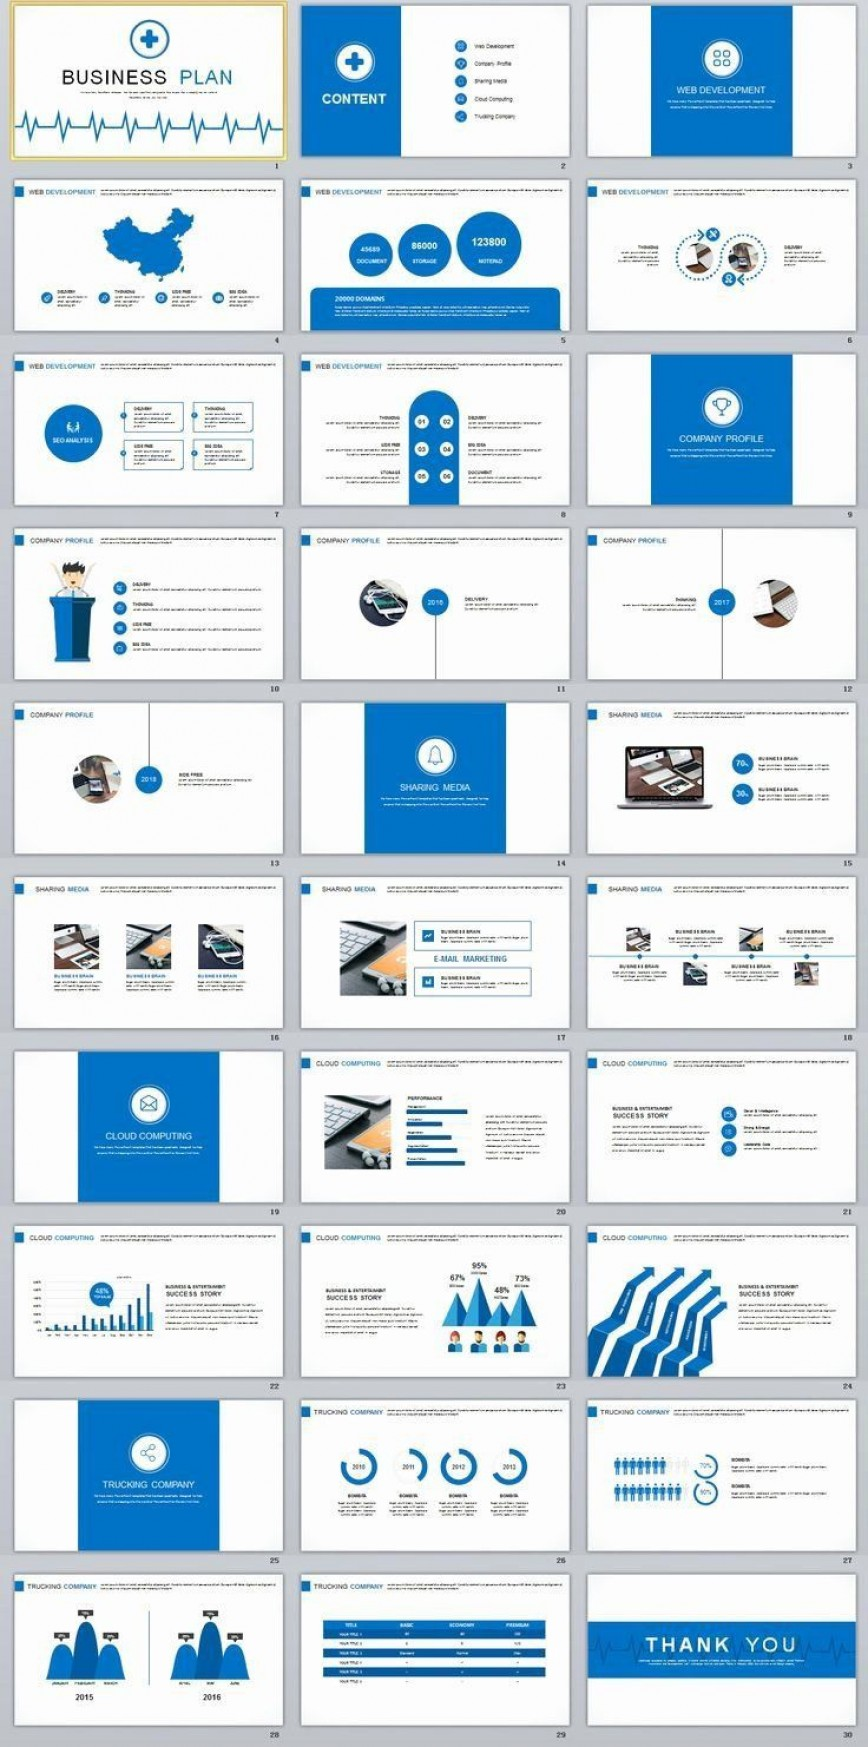 001 Amazing Best Busines Plan Template High Def  Canada Free Download Ppt